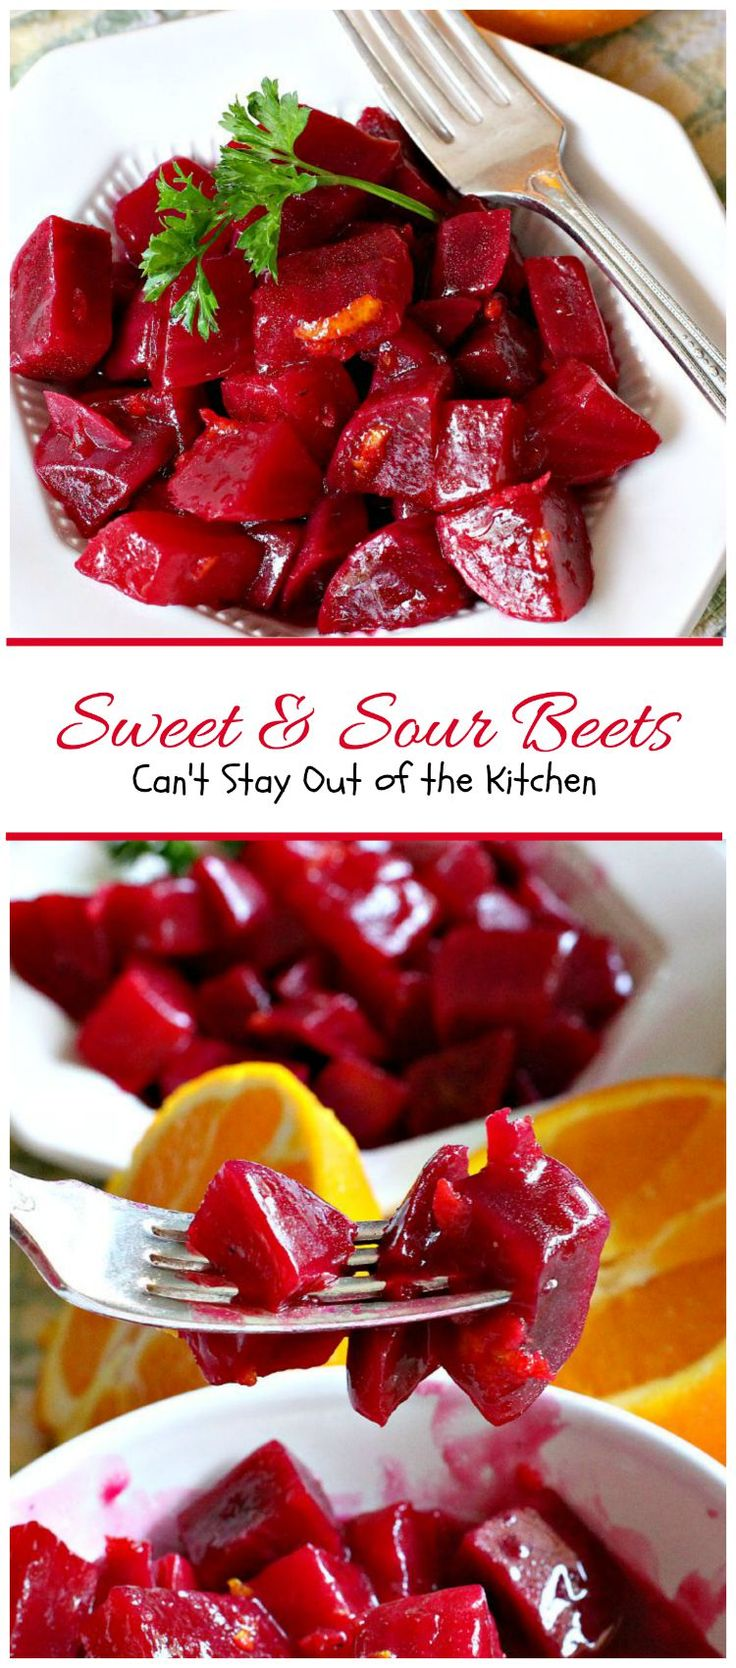 Sweet & Sour Beets | Can't Stay Out of the Kitchen | the most delicious beet dish you'll ever eat. Flavored with orange zest, this is a great holiday sidedish.                                                                                                                                                     More